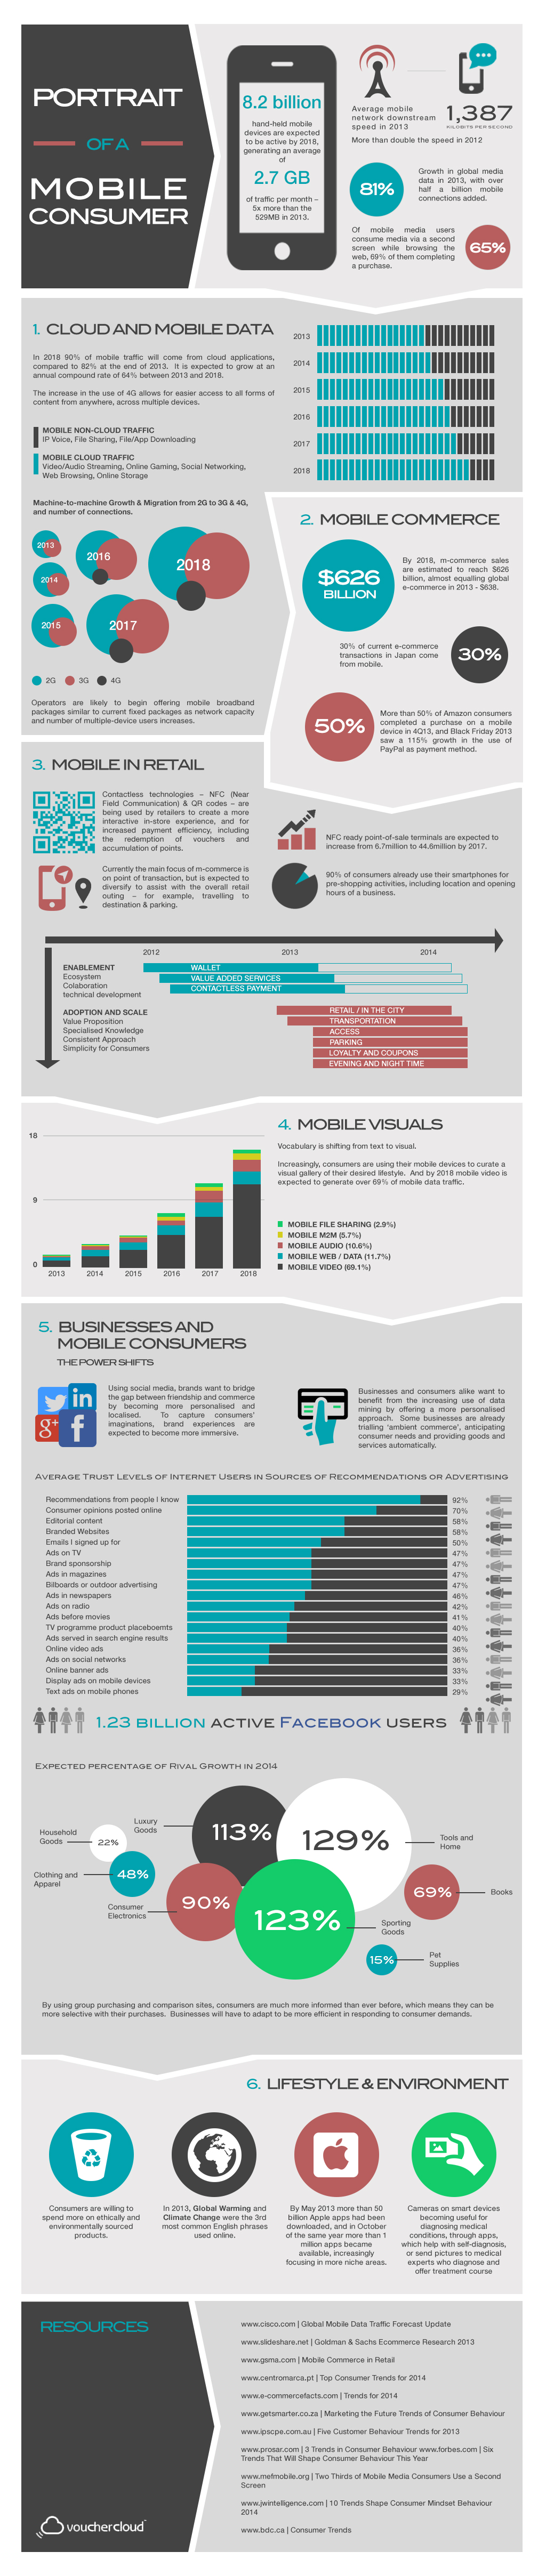 Mapping the Mobile Consumer World (Infographic)